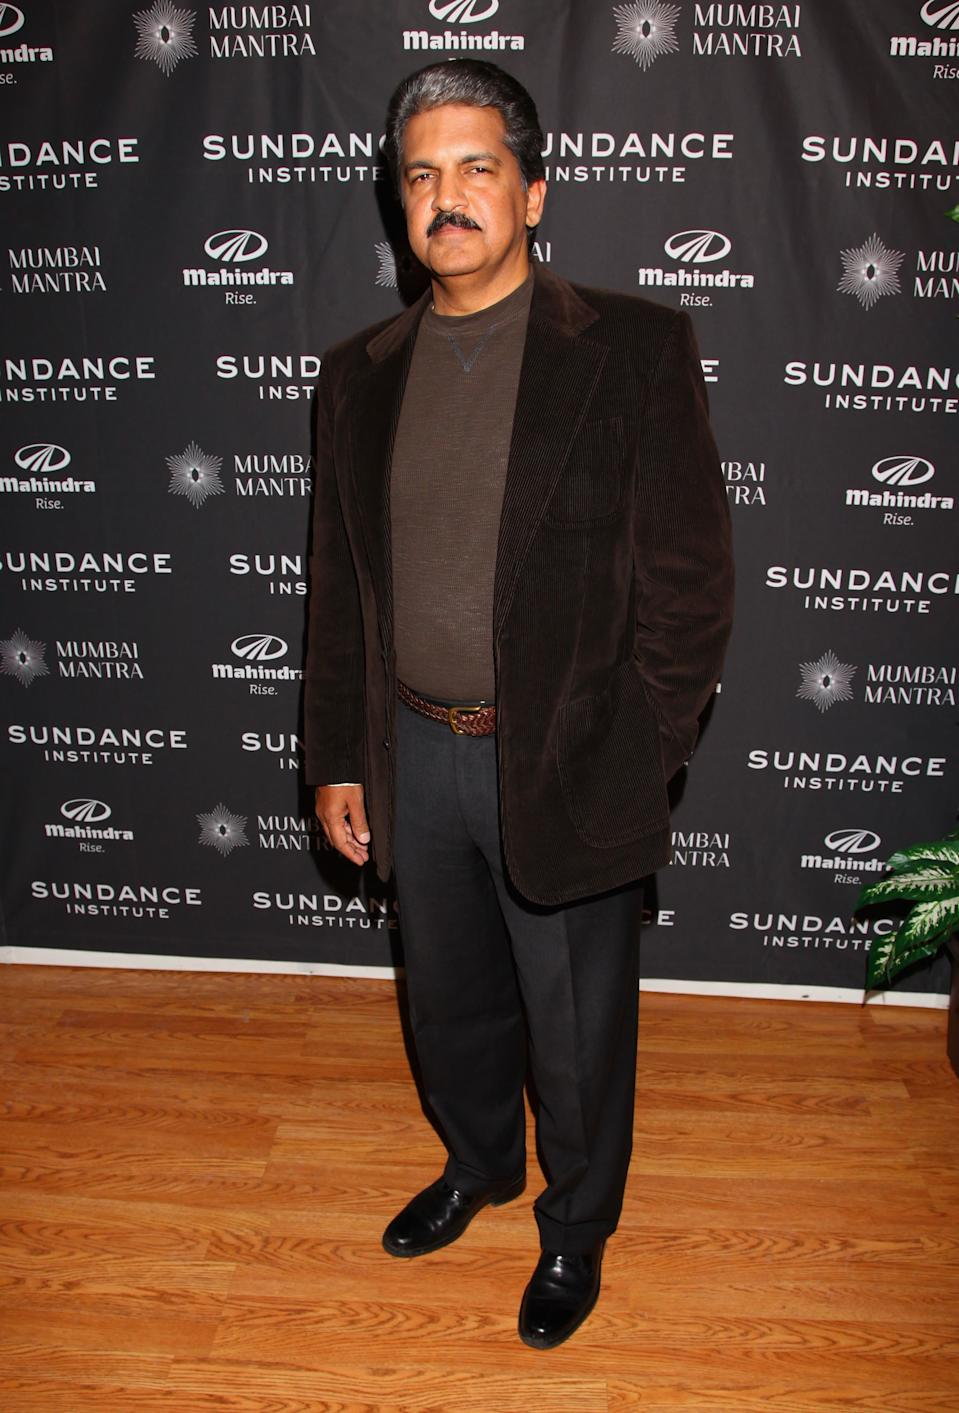 PARK CITY, UT - JANUARY 24: Vice Chairman & Managing Director of the Mahindra Group, Anand Mahindra attends the Sundance Institute Mahindra Global Filmmaking award reception during the 2012 Sundance Film Festival held at Sundance House on January 24, 2012 in Park City, Utah. (Photo by Jonathan Leibson/Getty Images)